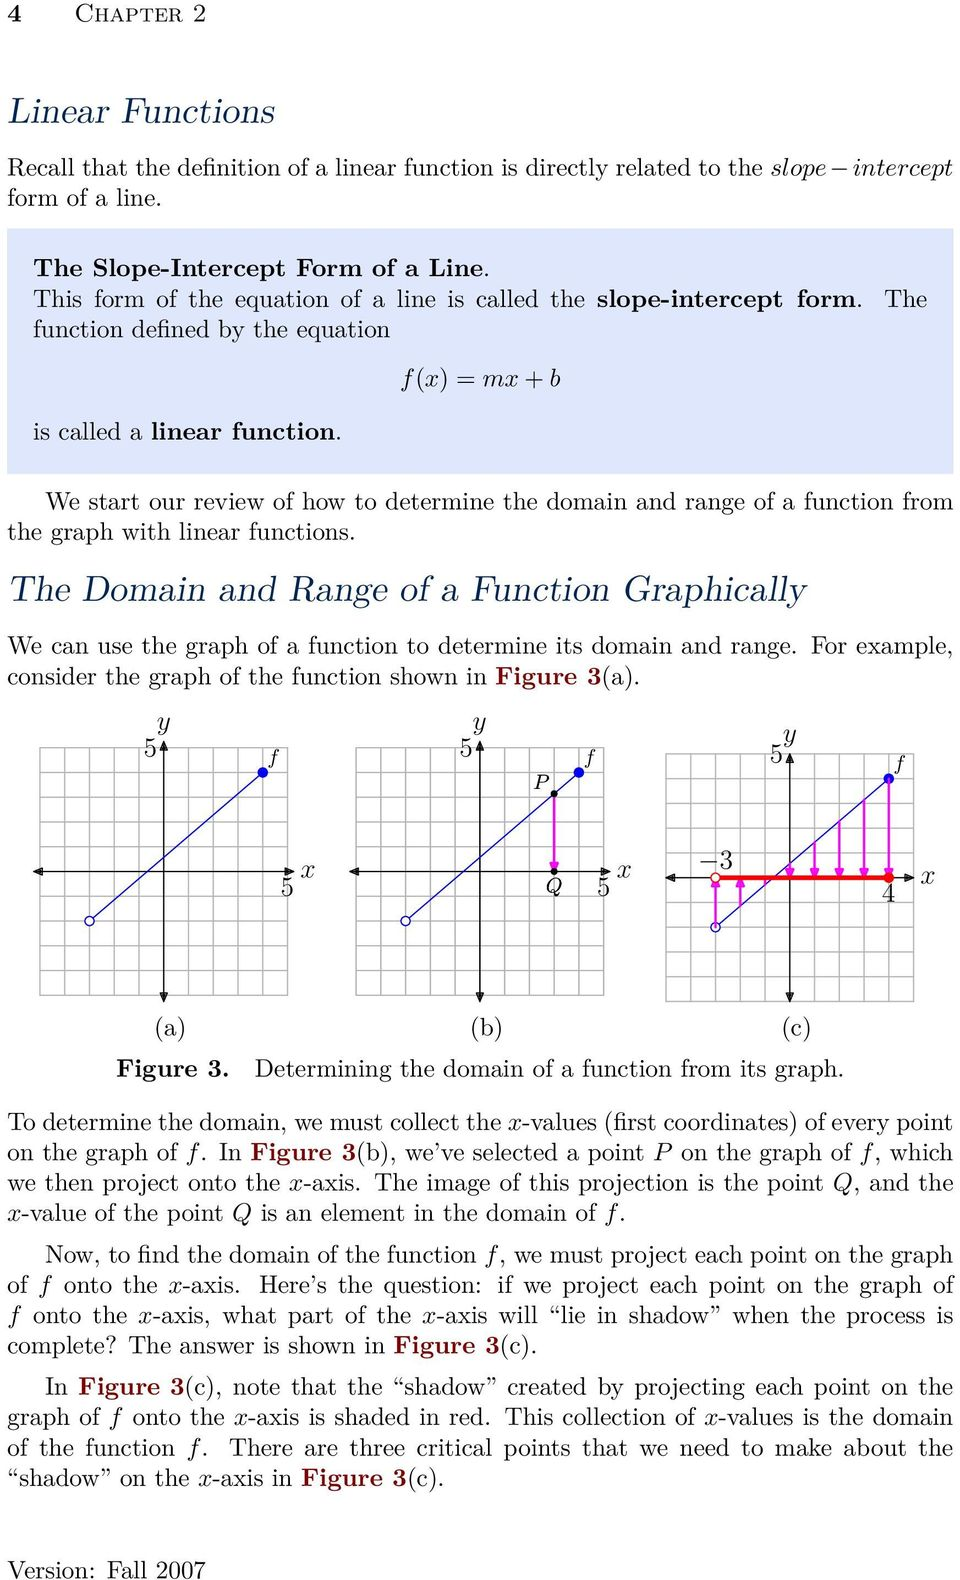 We start our review o how to determine the domain and range o a unction rom the graph with linear unctions.